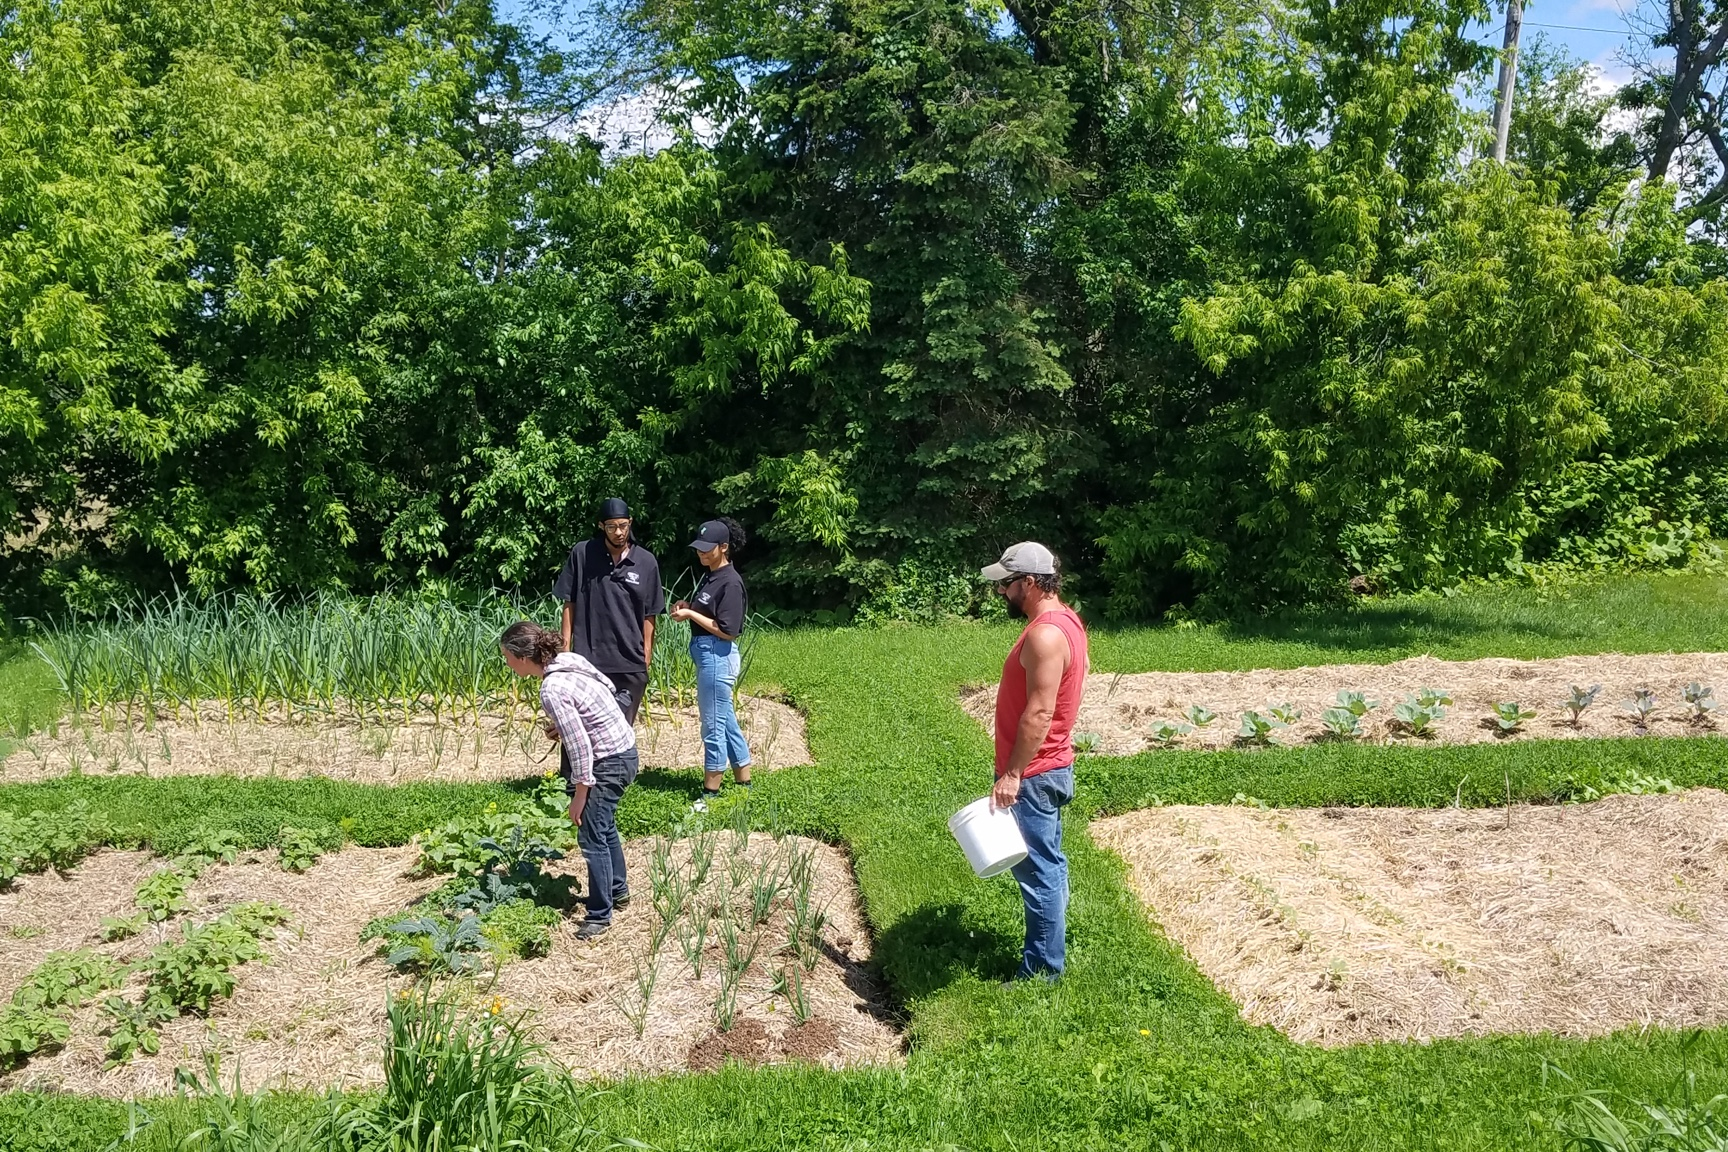 Four people look around a garden plot that has a variety of vegetable plants.